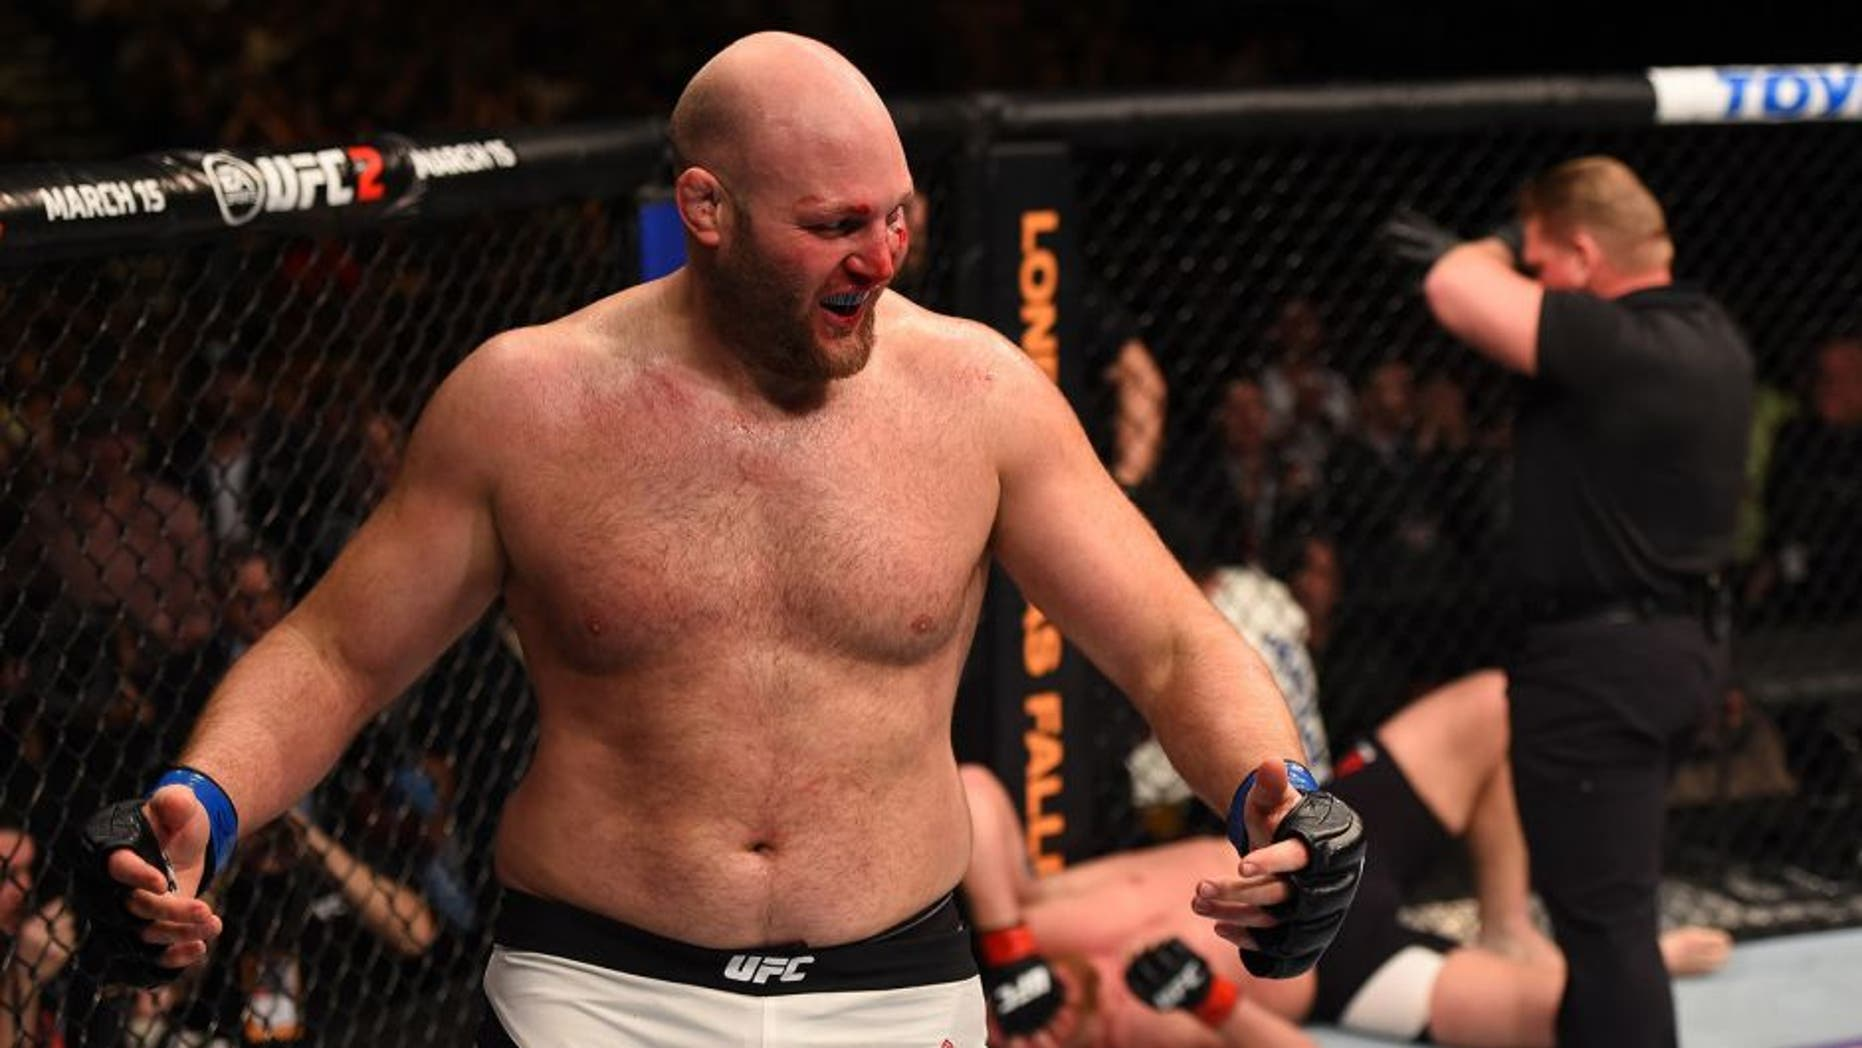 NEWARK, NJ - JANUARY 30: (L-R) Ben Rothwell celebrates his submission victory over Josh Barnett in their heavyweight bout during the UFC Fight Night event at the Prudential Center on January 30, 2016 in Newark, New Jersey. (Photo by Josh Hedges/Zuffa LLC/Zuffa LLC via Getty Images)